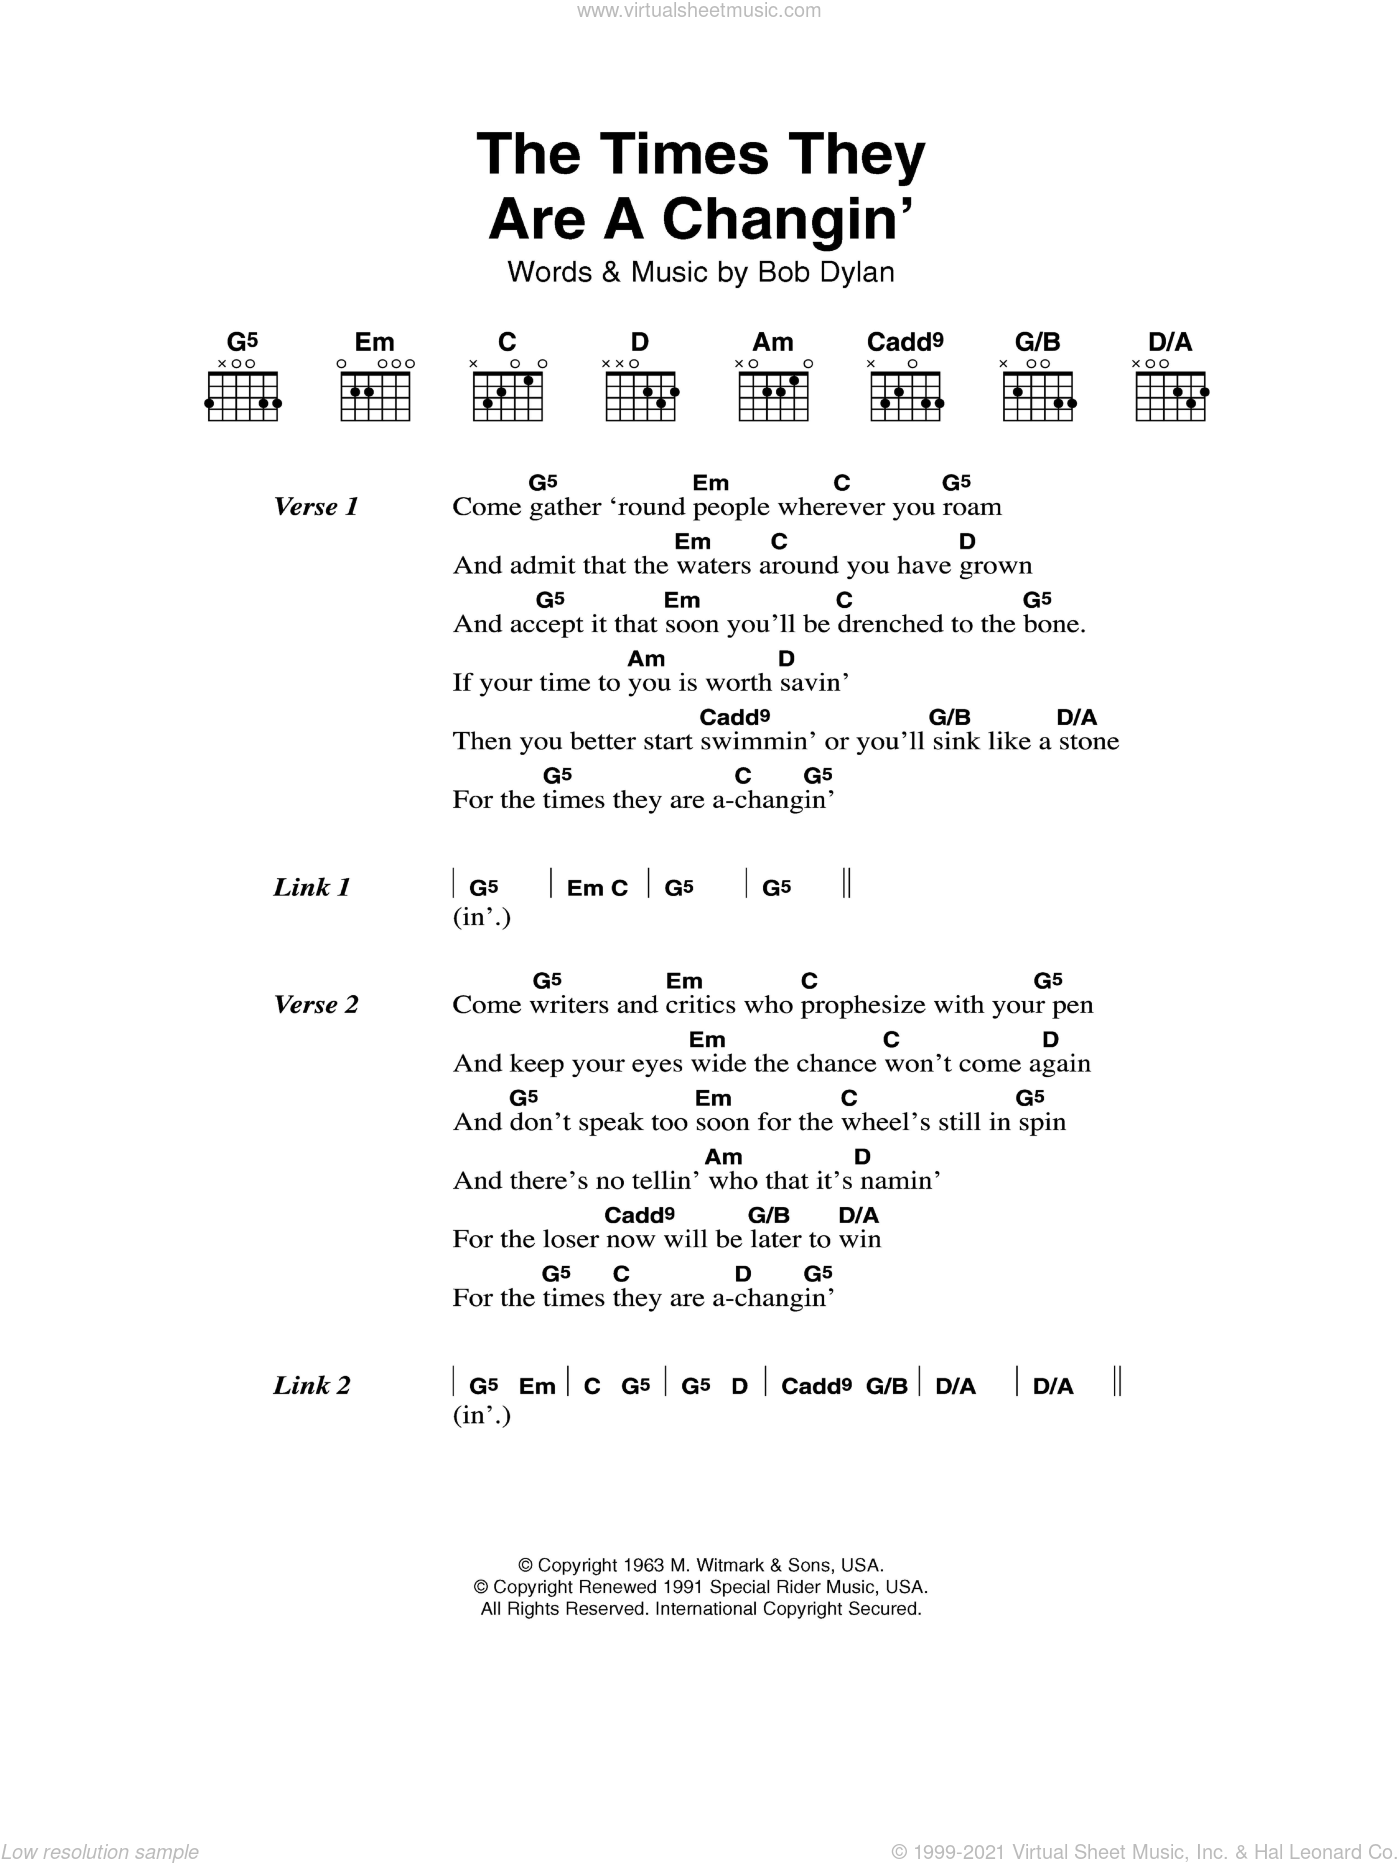 The Times They Are A-Changin' sheet music for guitar (chords) by Bob Dylan, intermediate skill level